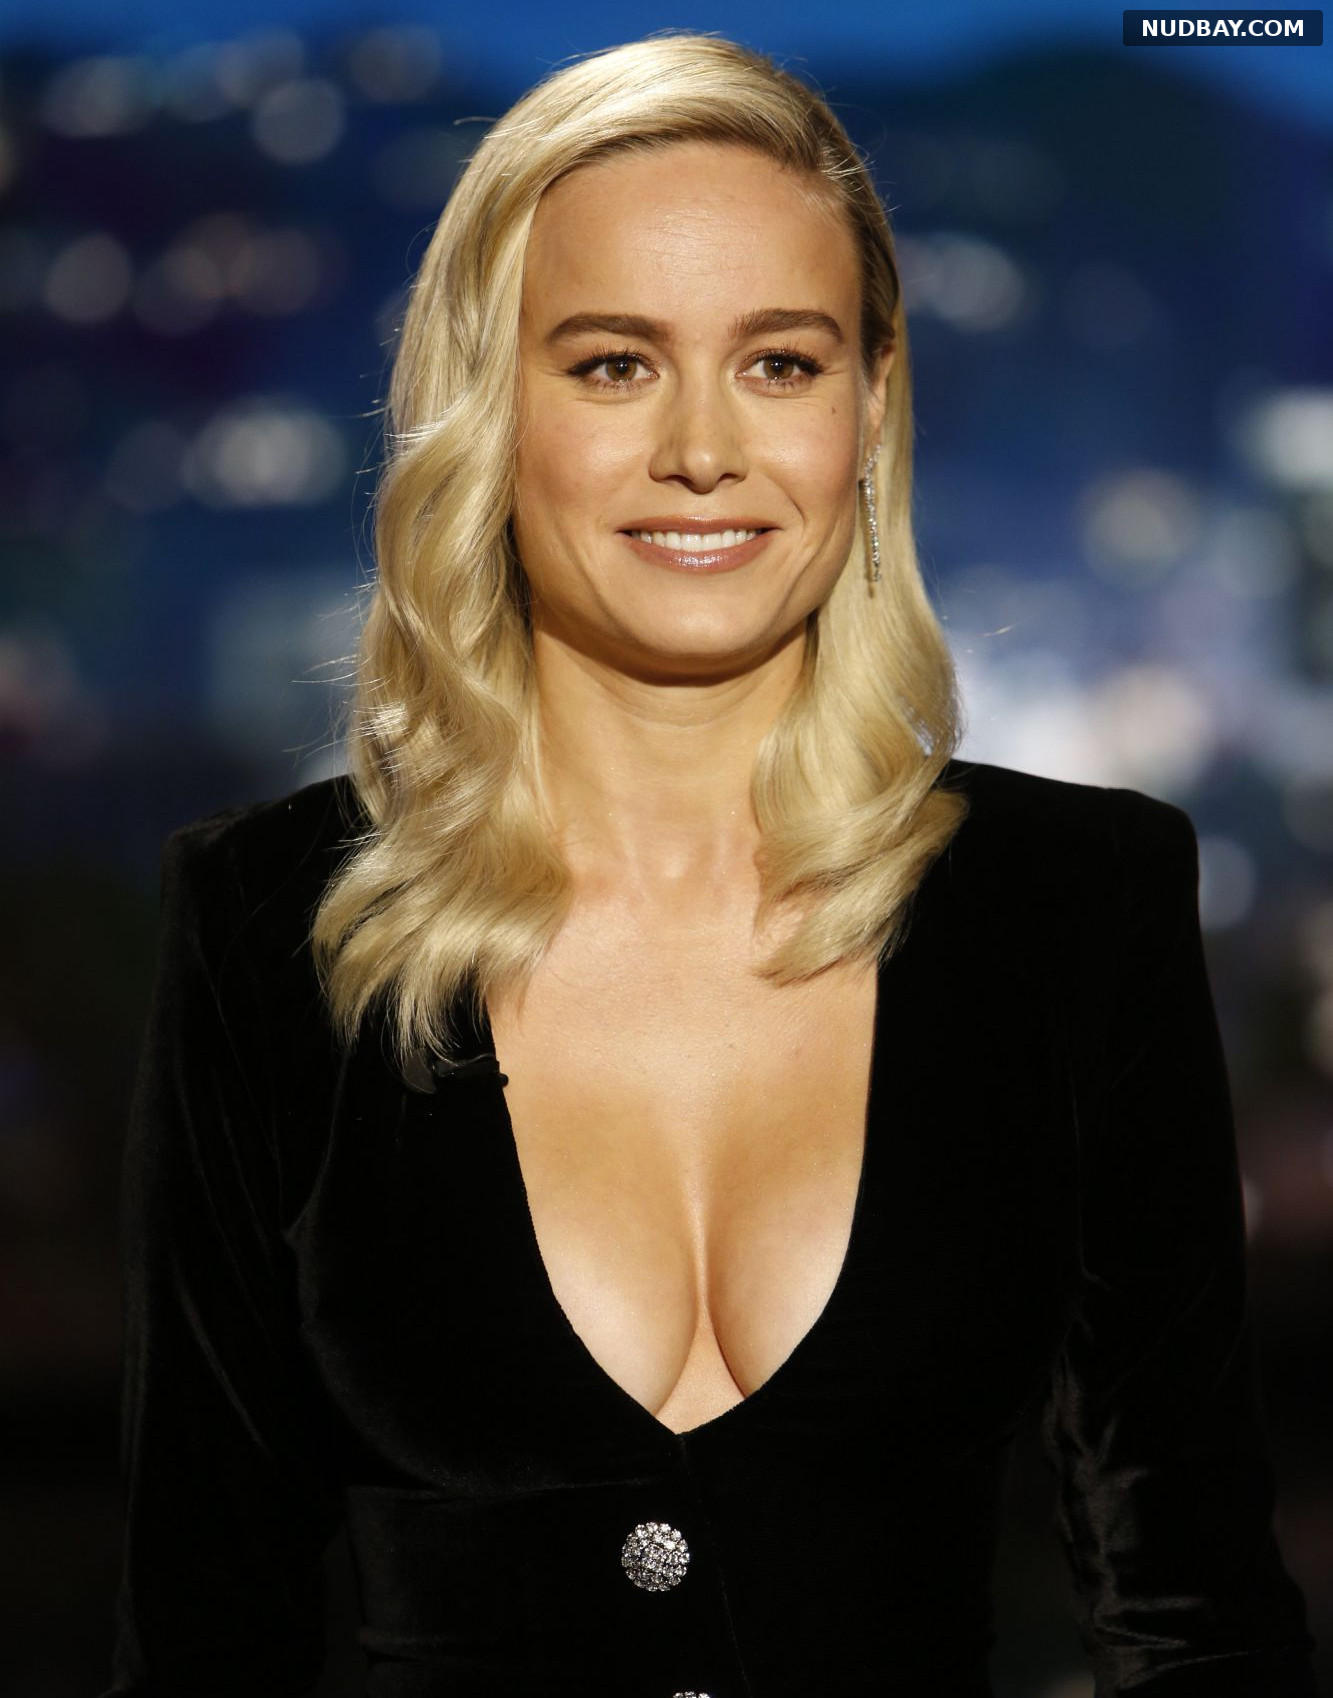 Brie Larson At Jimmy Kimmel Live in Los Angeles Dec 17 2019